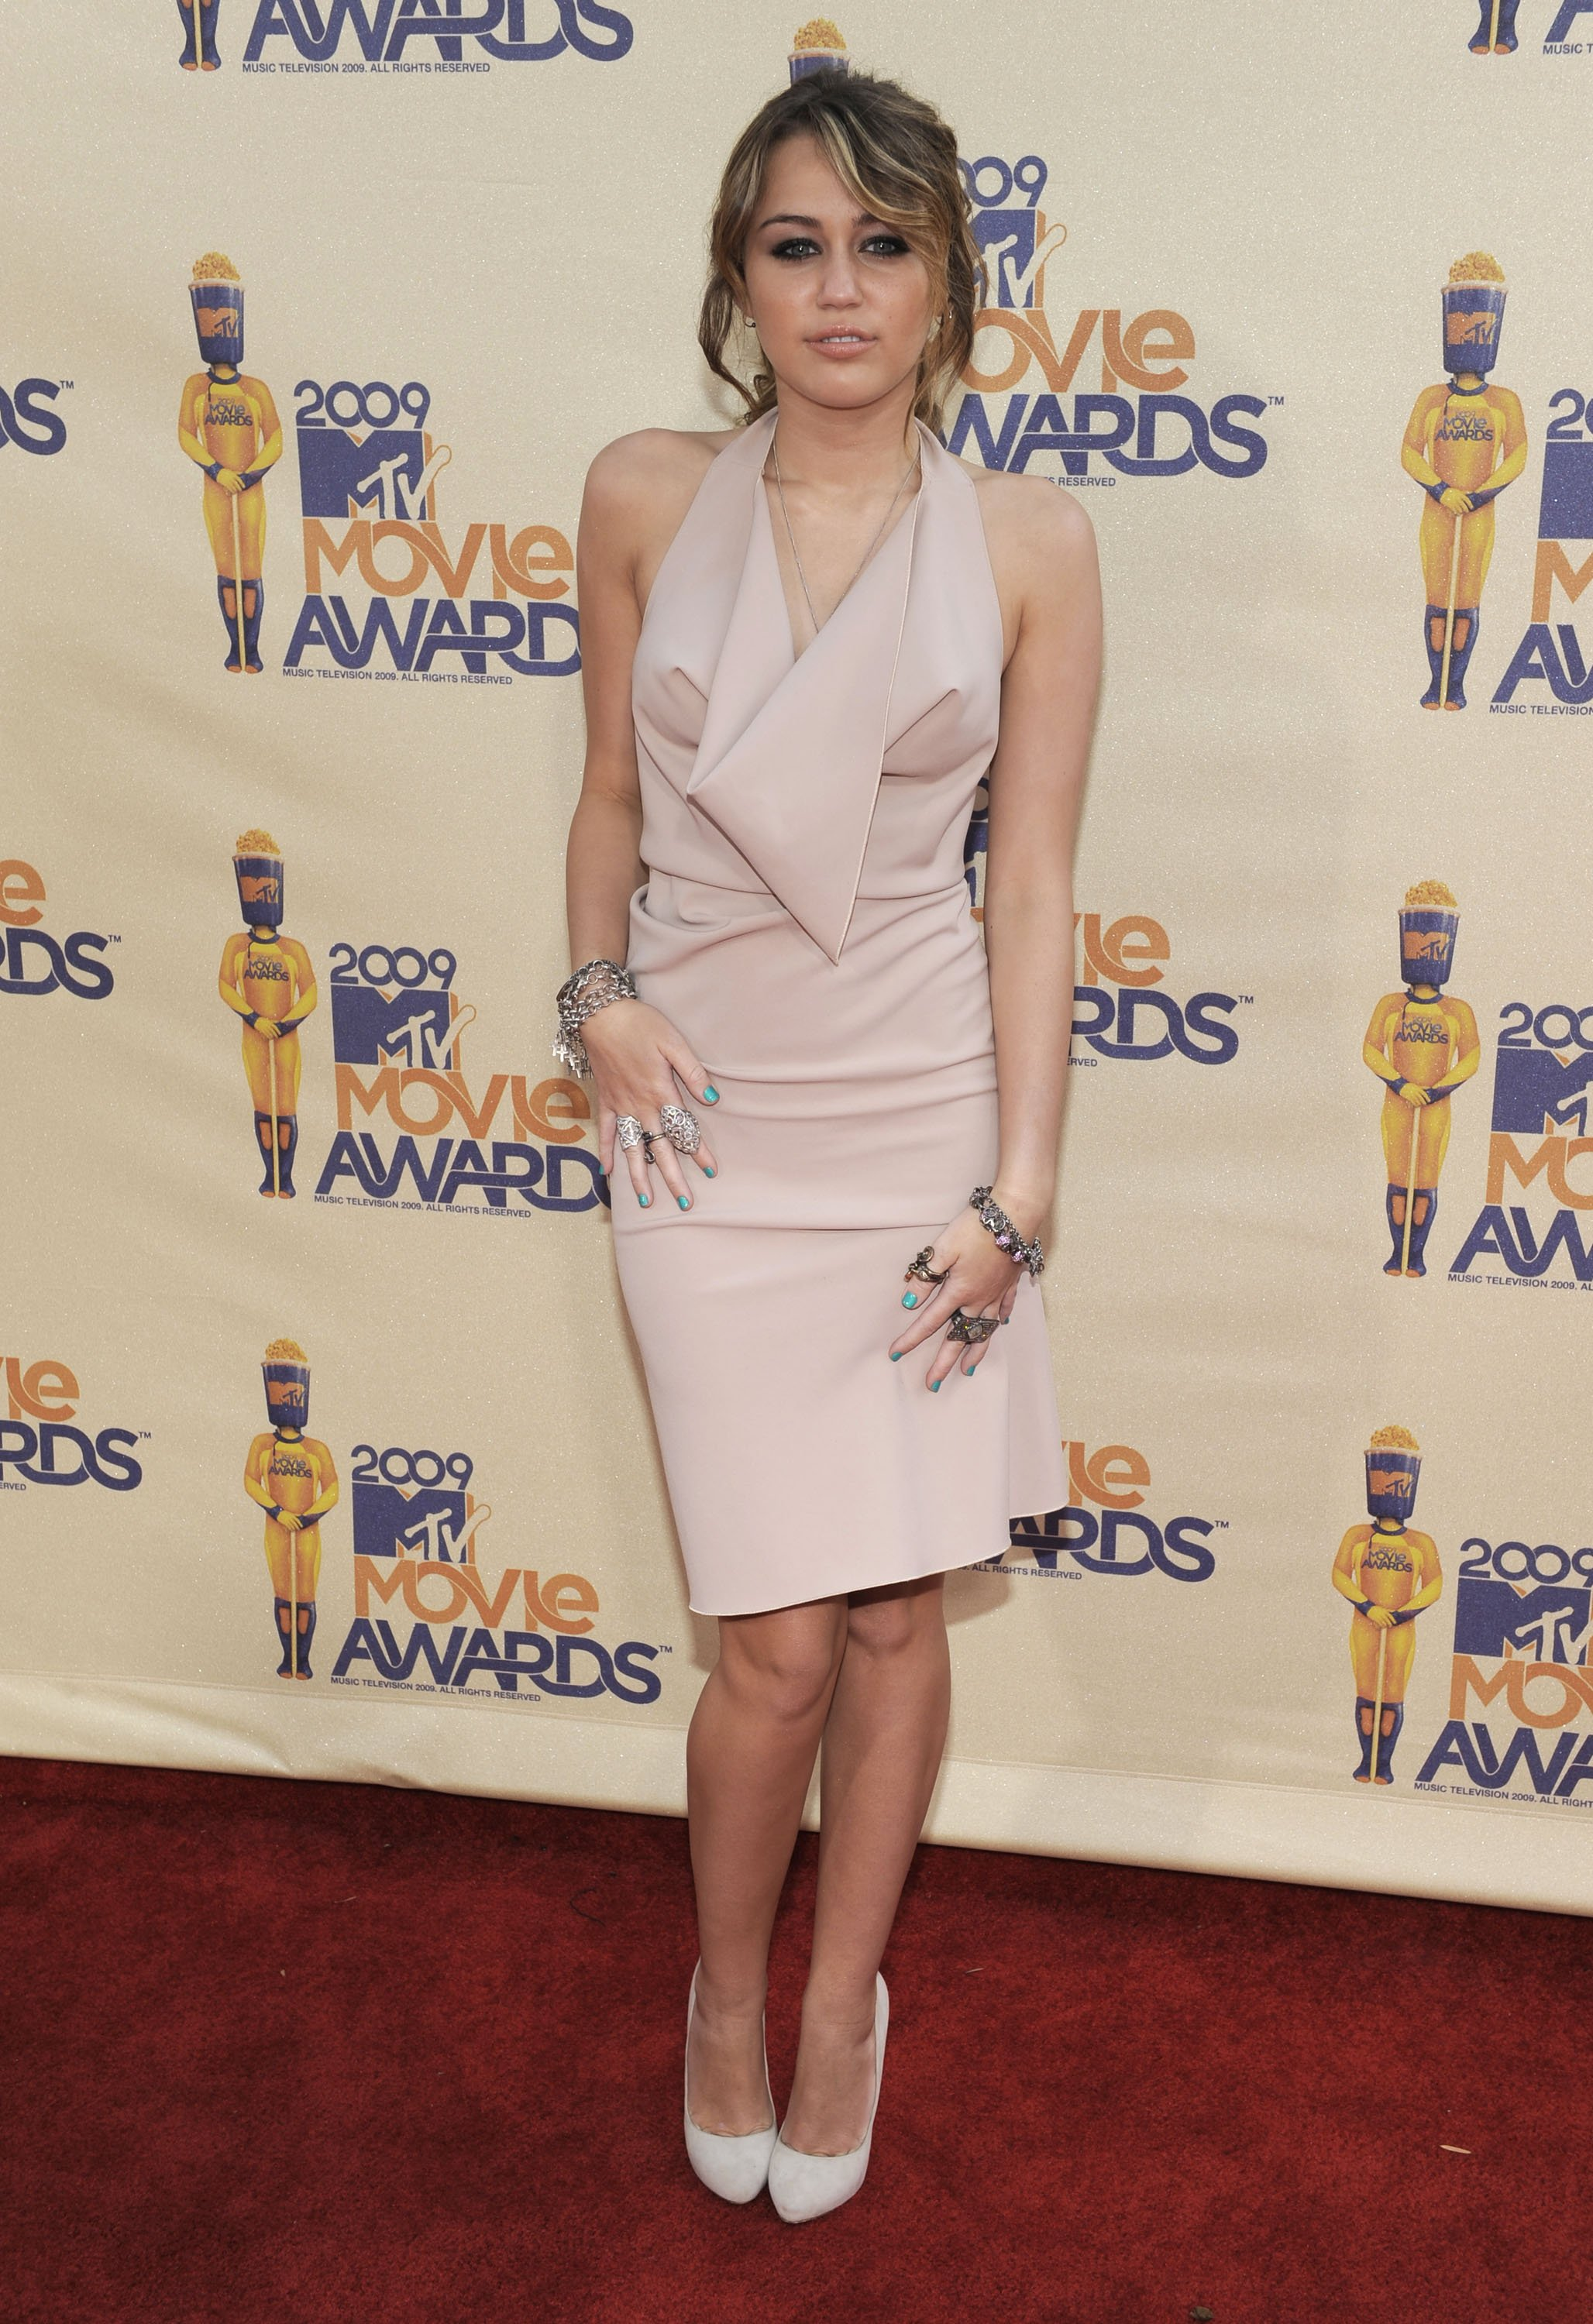 26722_Celebutopia-Miley_Cyrus_arrives_at_the_2009_MTV_Movie_Awards-08_122_1029lo.jpg